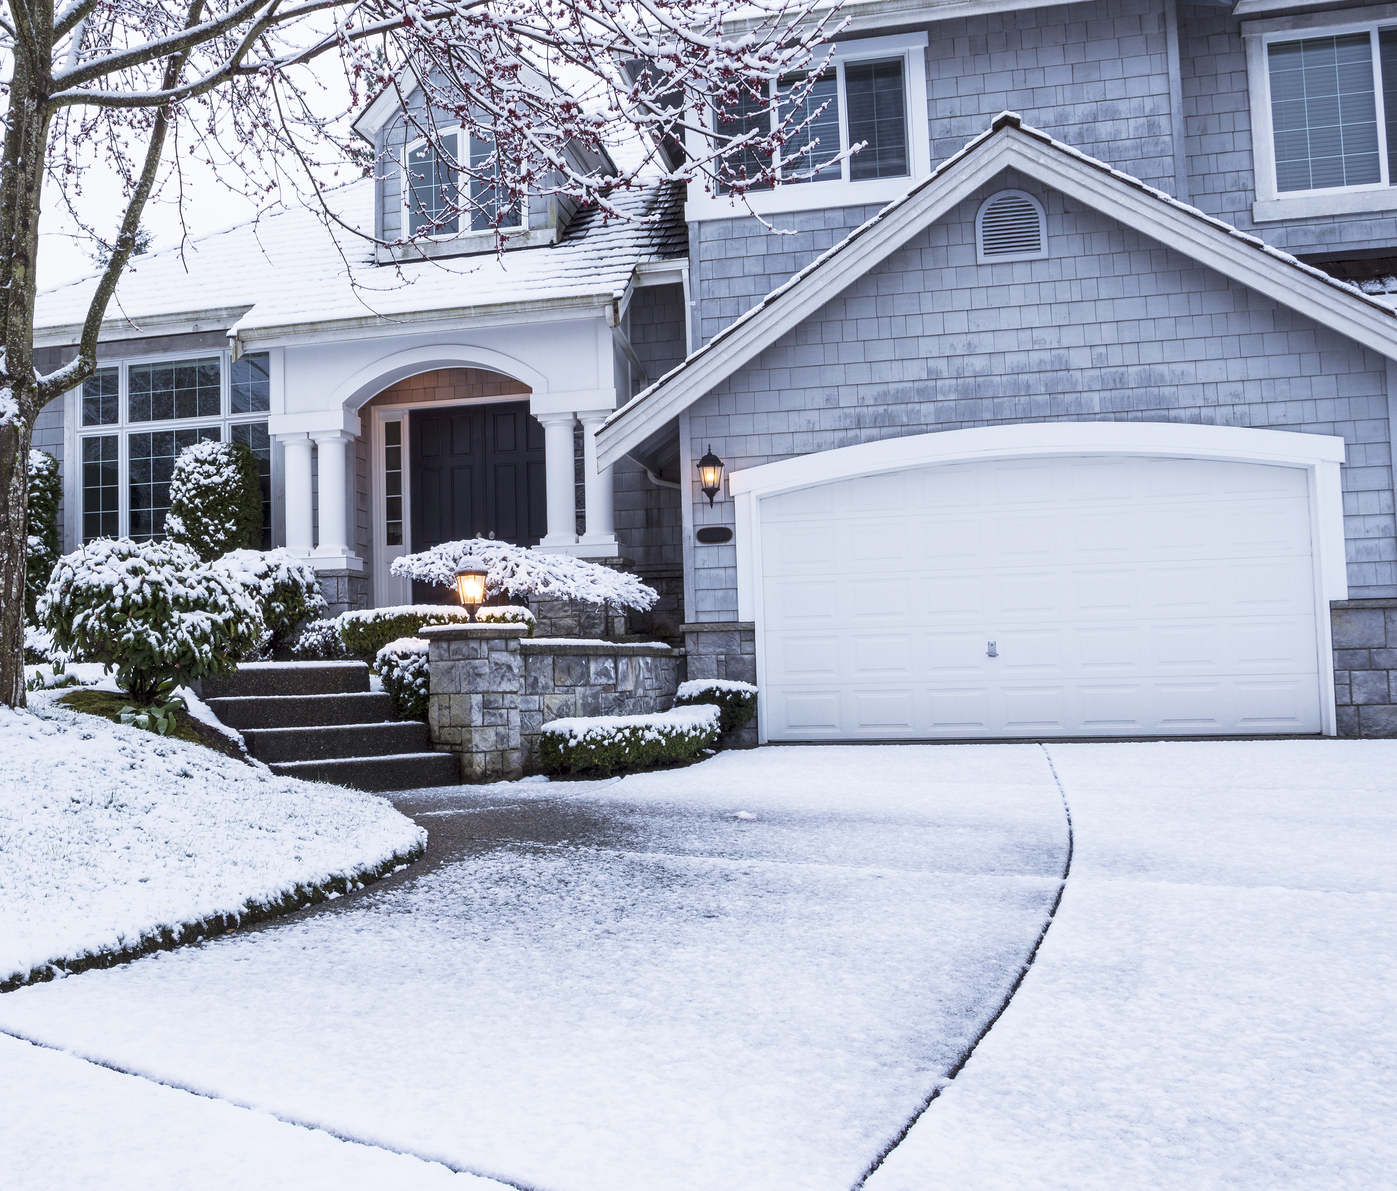 Surviving a Winter Storm: How to Prepare Your Household